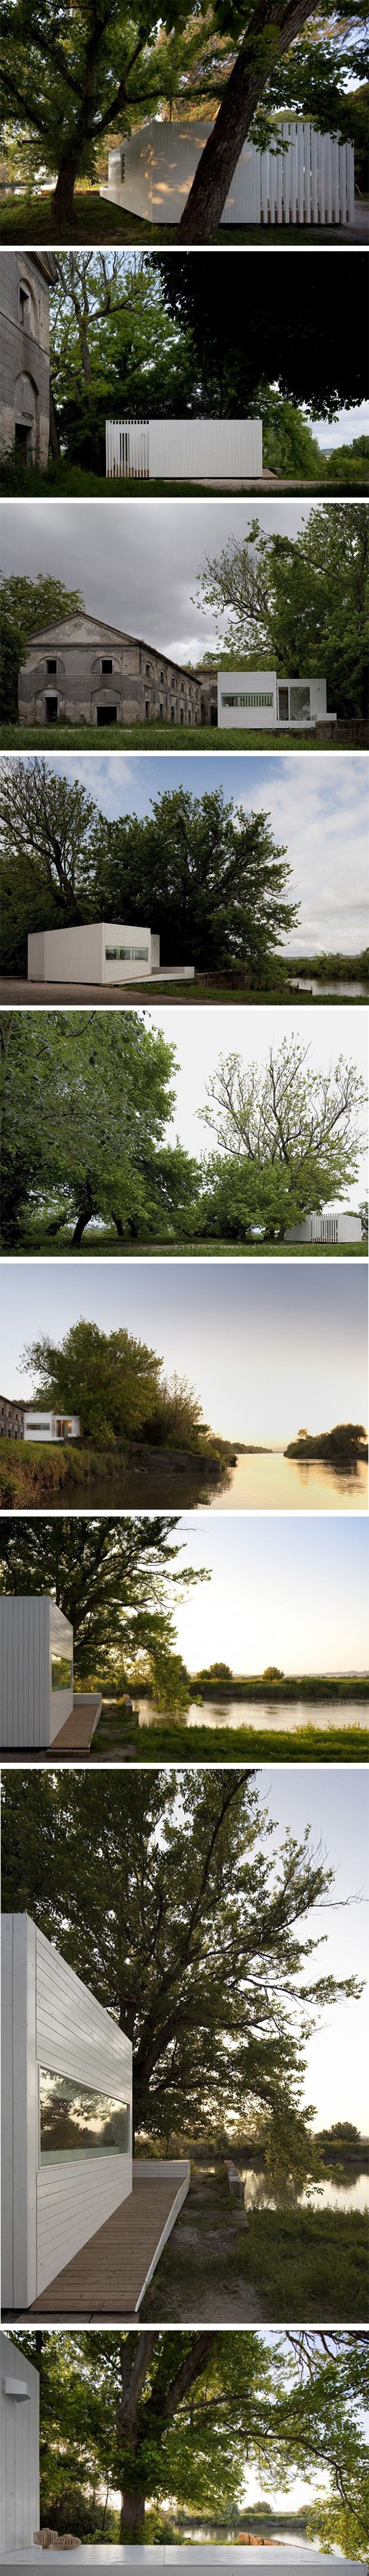 TreeHouse Riga by Appleton Architects. 2 units of 20sq mt each in Lisbon, Portugal